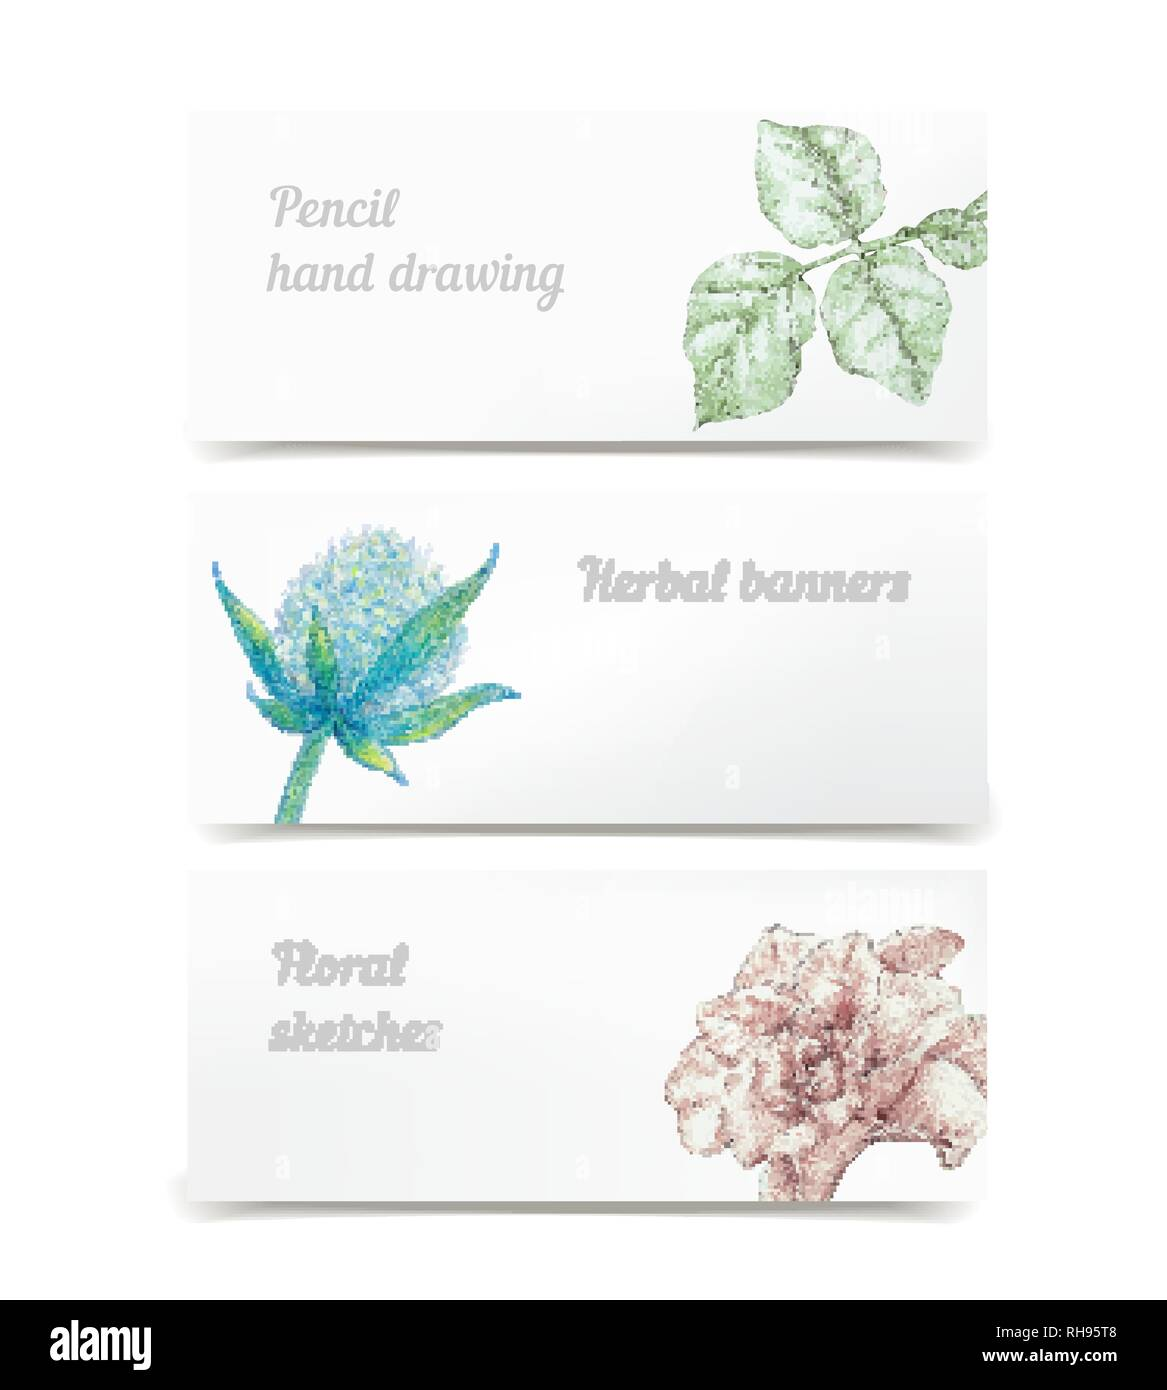 Vector Floral Hand Drawn Herbal Banners Color Pencils Botanical Elements As Heath And Beauty Decoration Rose And Leaves Under Clipping Mask Stock Vector Image Art Alamy